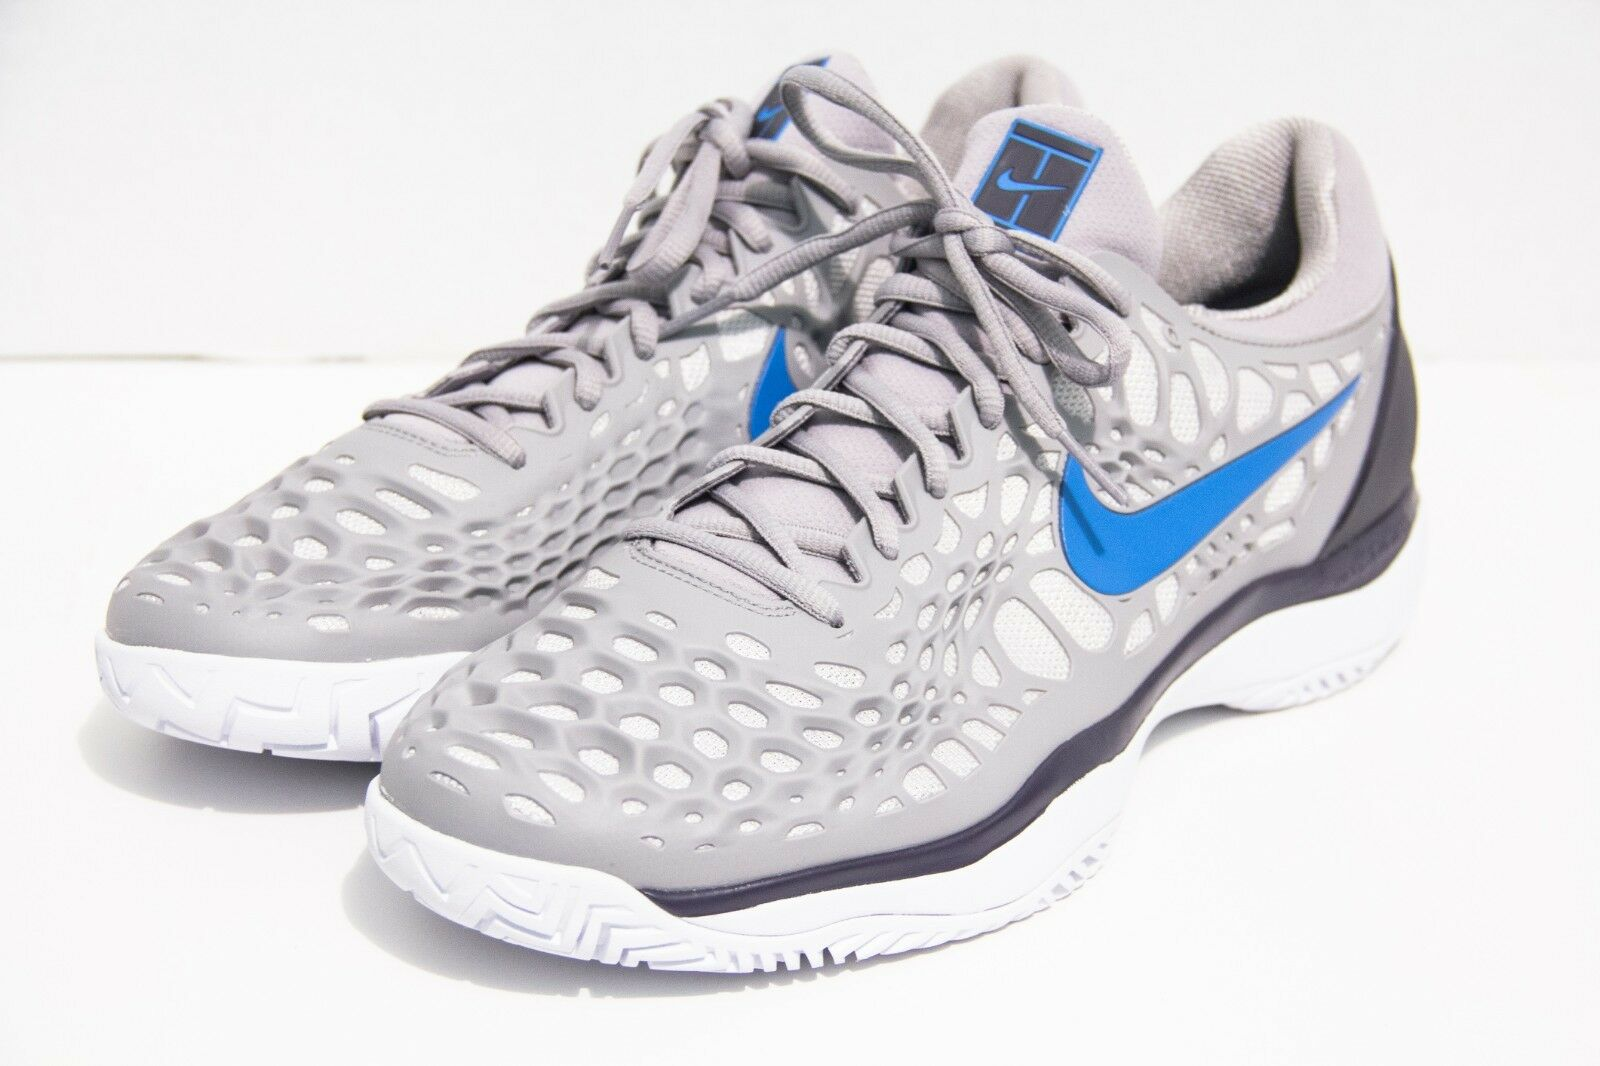 Nike Men's Air Zoom Cage 3 Size 12 Grey bluee Tennis shoes Hard Court 918193-049